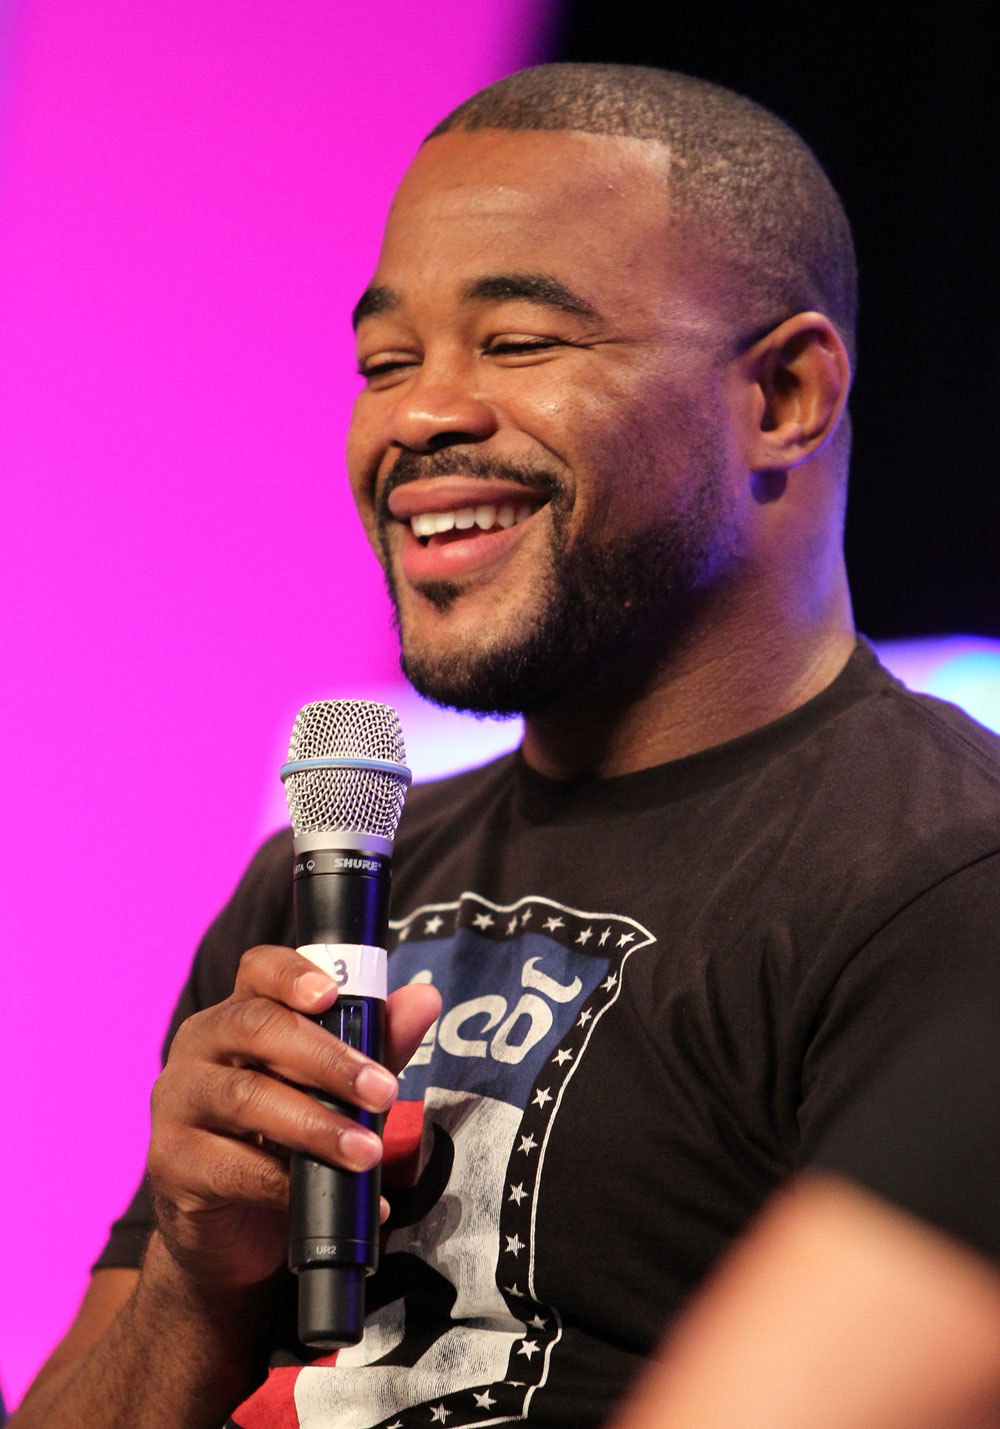 UFC fighter Rashad Evans attends a Q&amp;A session with former cast members of The Ultimate Fighter on the main stage at the UFC Fan Expo